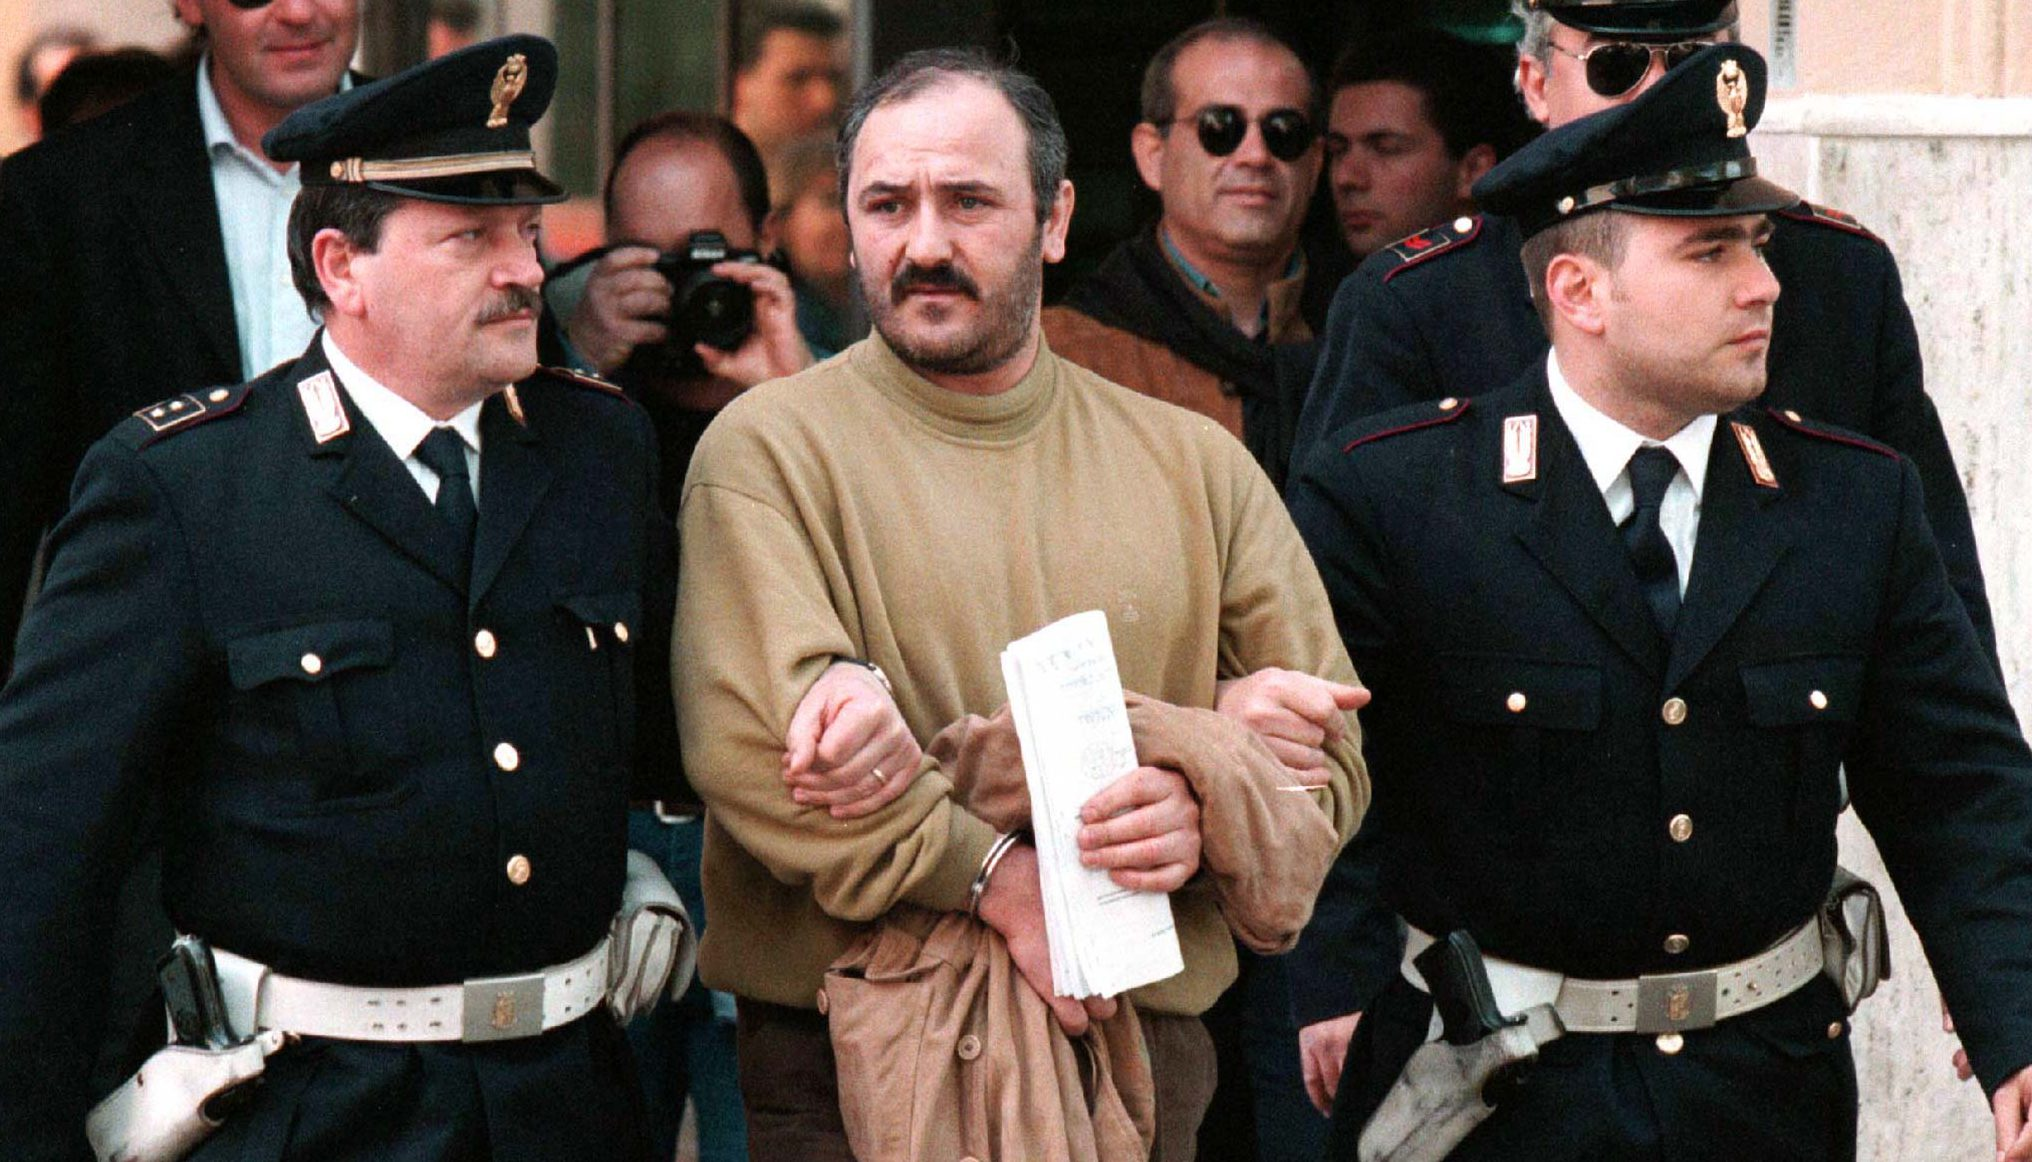 Vito Vitale, 39, a leading mobster widely believed to be the heir of jailed Mafia 'boss of bosses' Salvatore Toto Riina is escorted by Italian police to the jail in Palermo, Sicily, April 15. Vitale was ambushed by police at a farm estate where he was in hiding near the Sicilian capital of Palermo April 14.